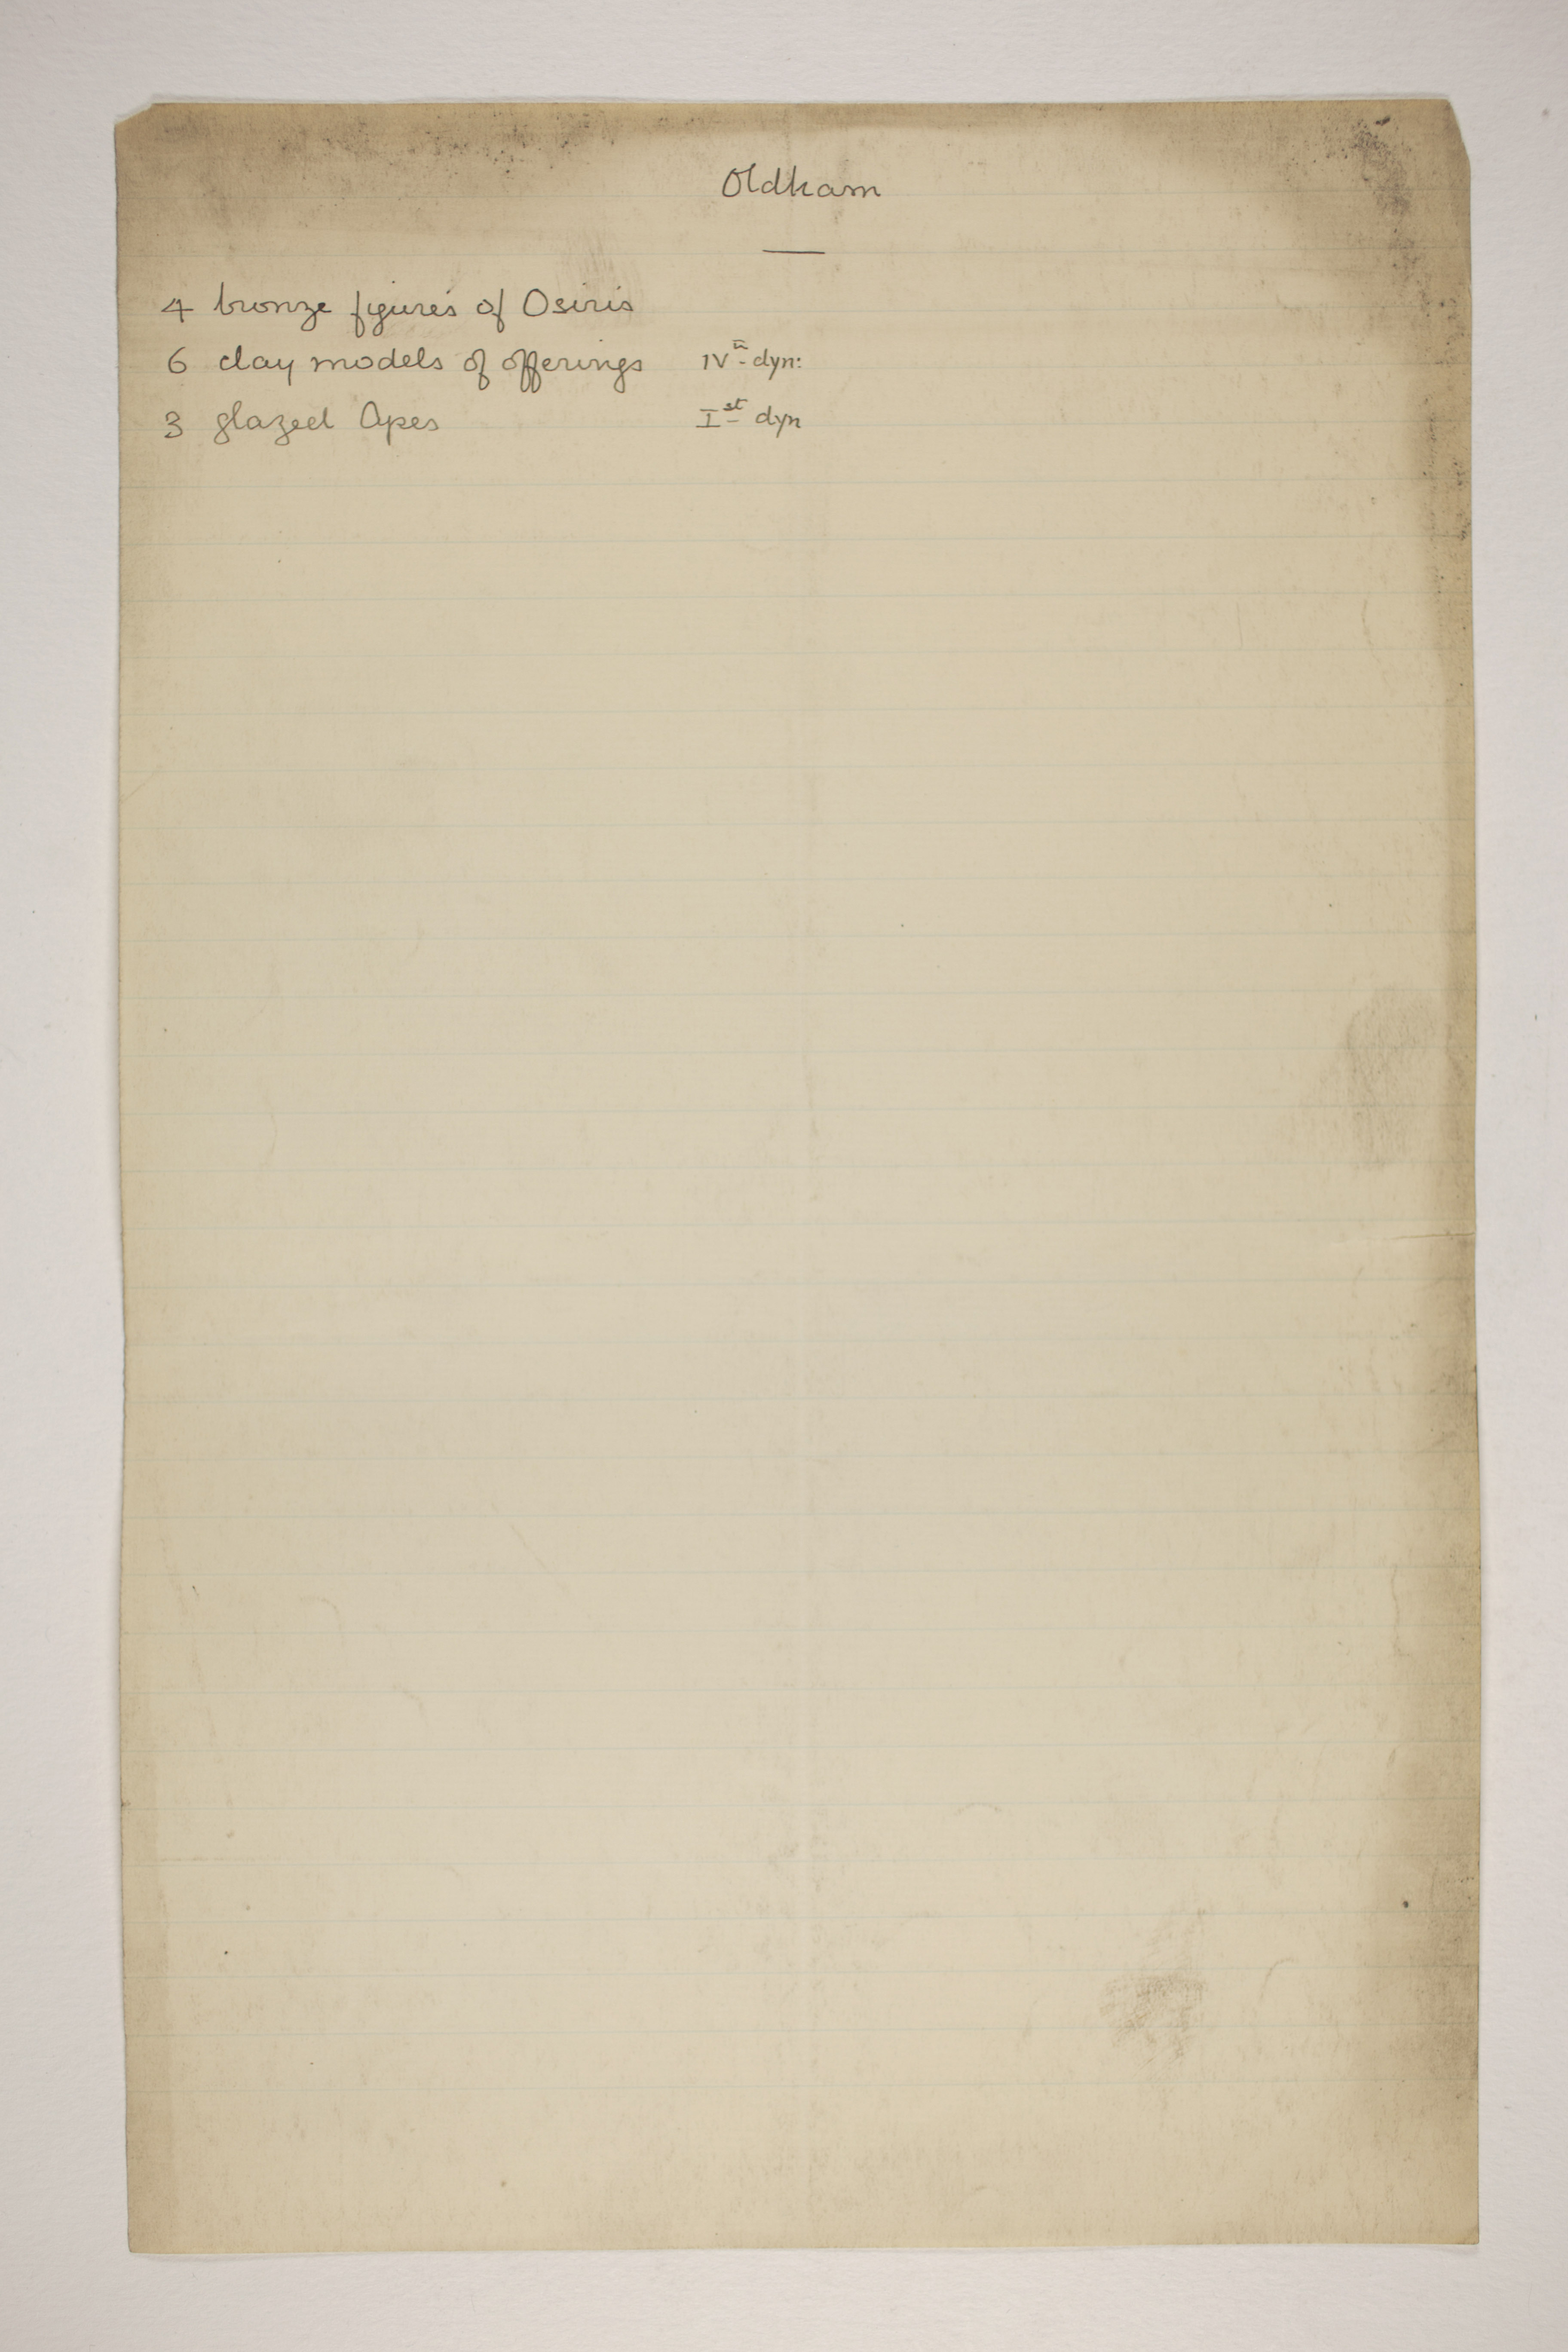 1902-03 Abydos Individual institution list  PMA/WFP1/D/11/45